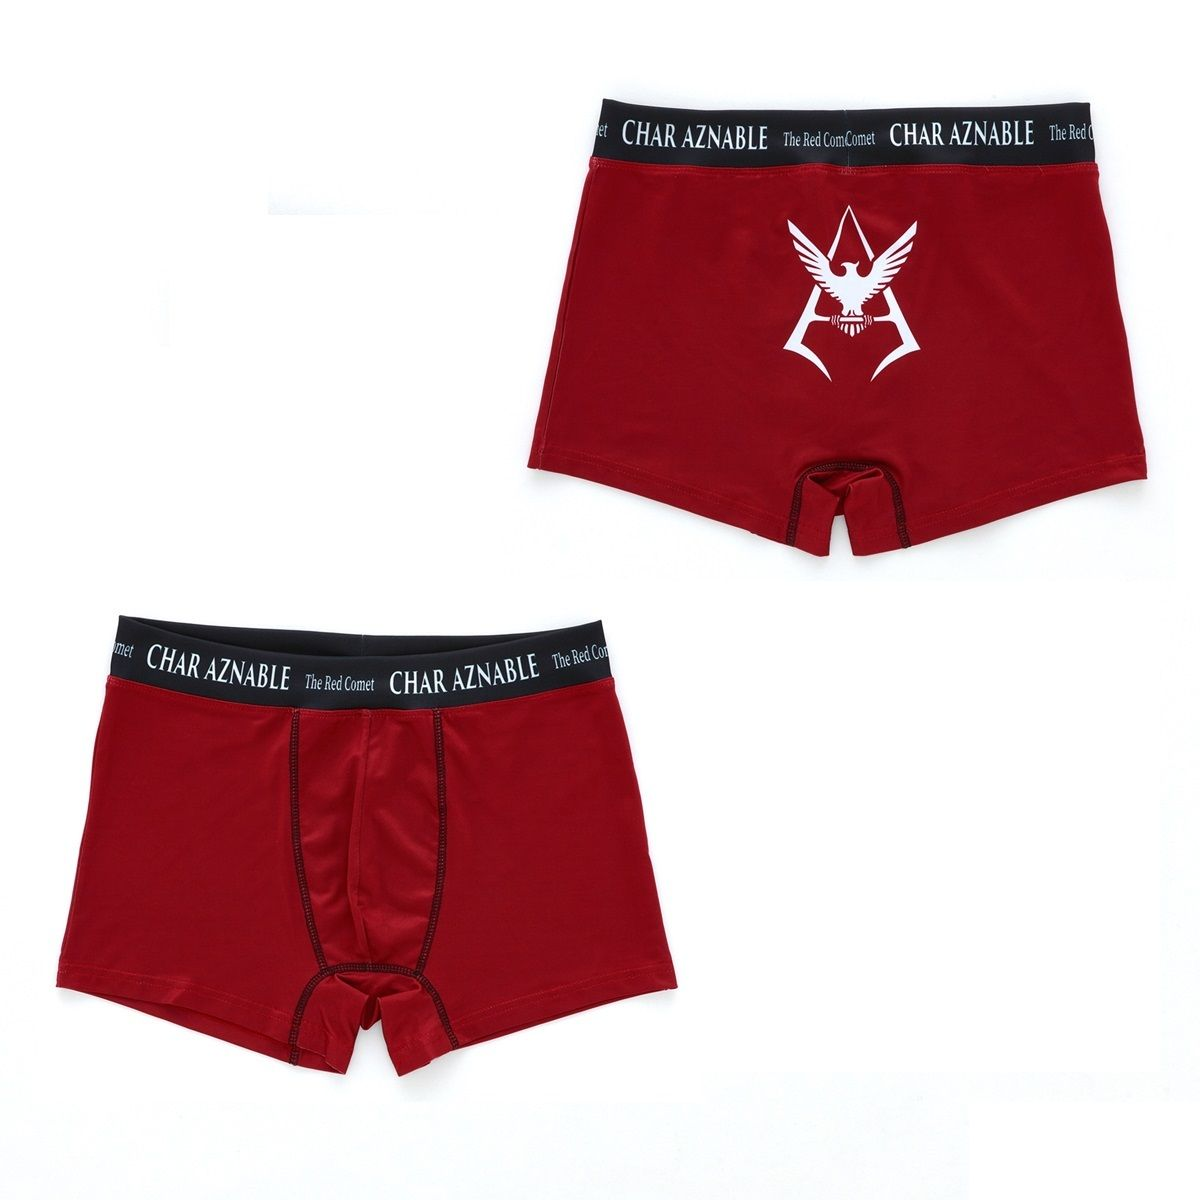 Mobile Suit Gundam Char Aznable Logo Boxer Shorts